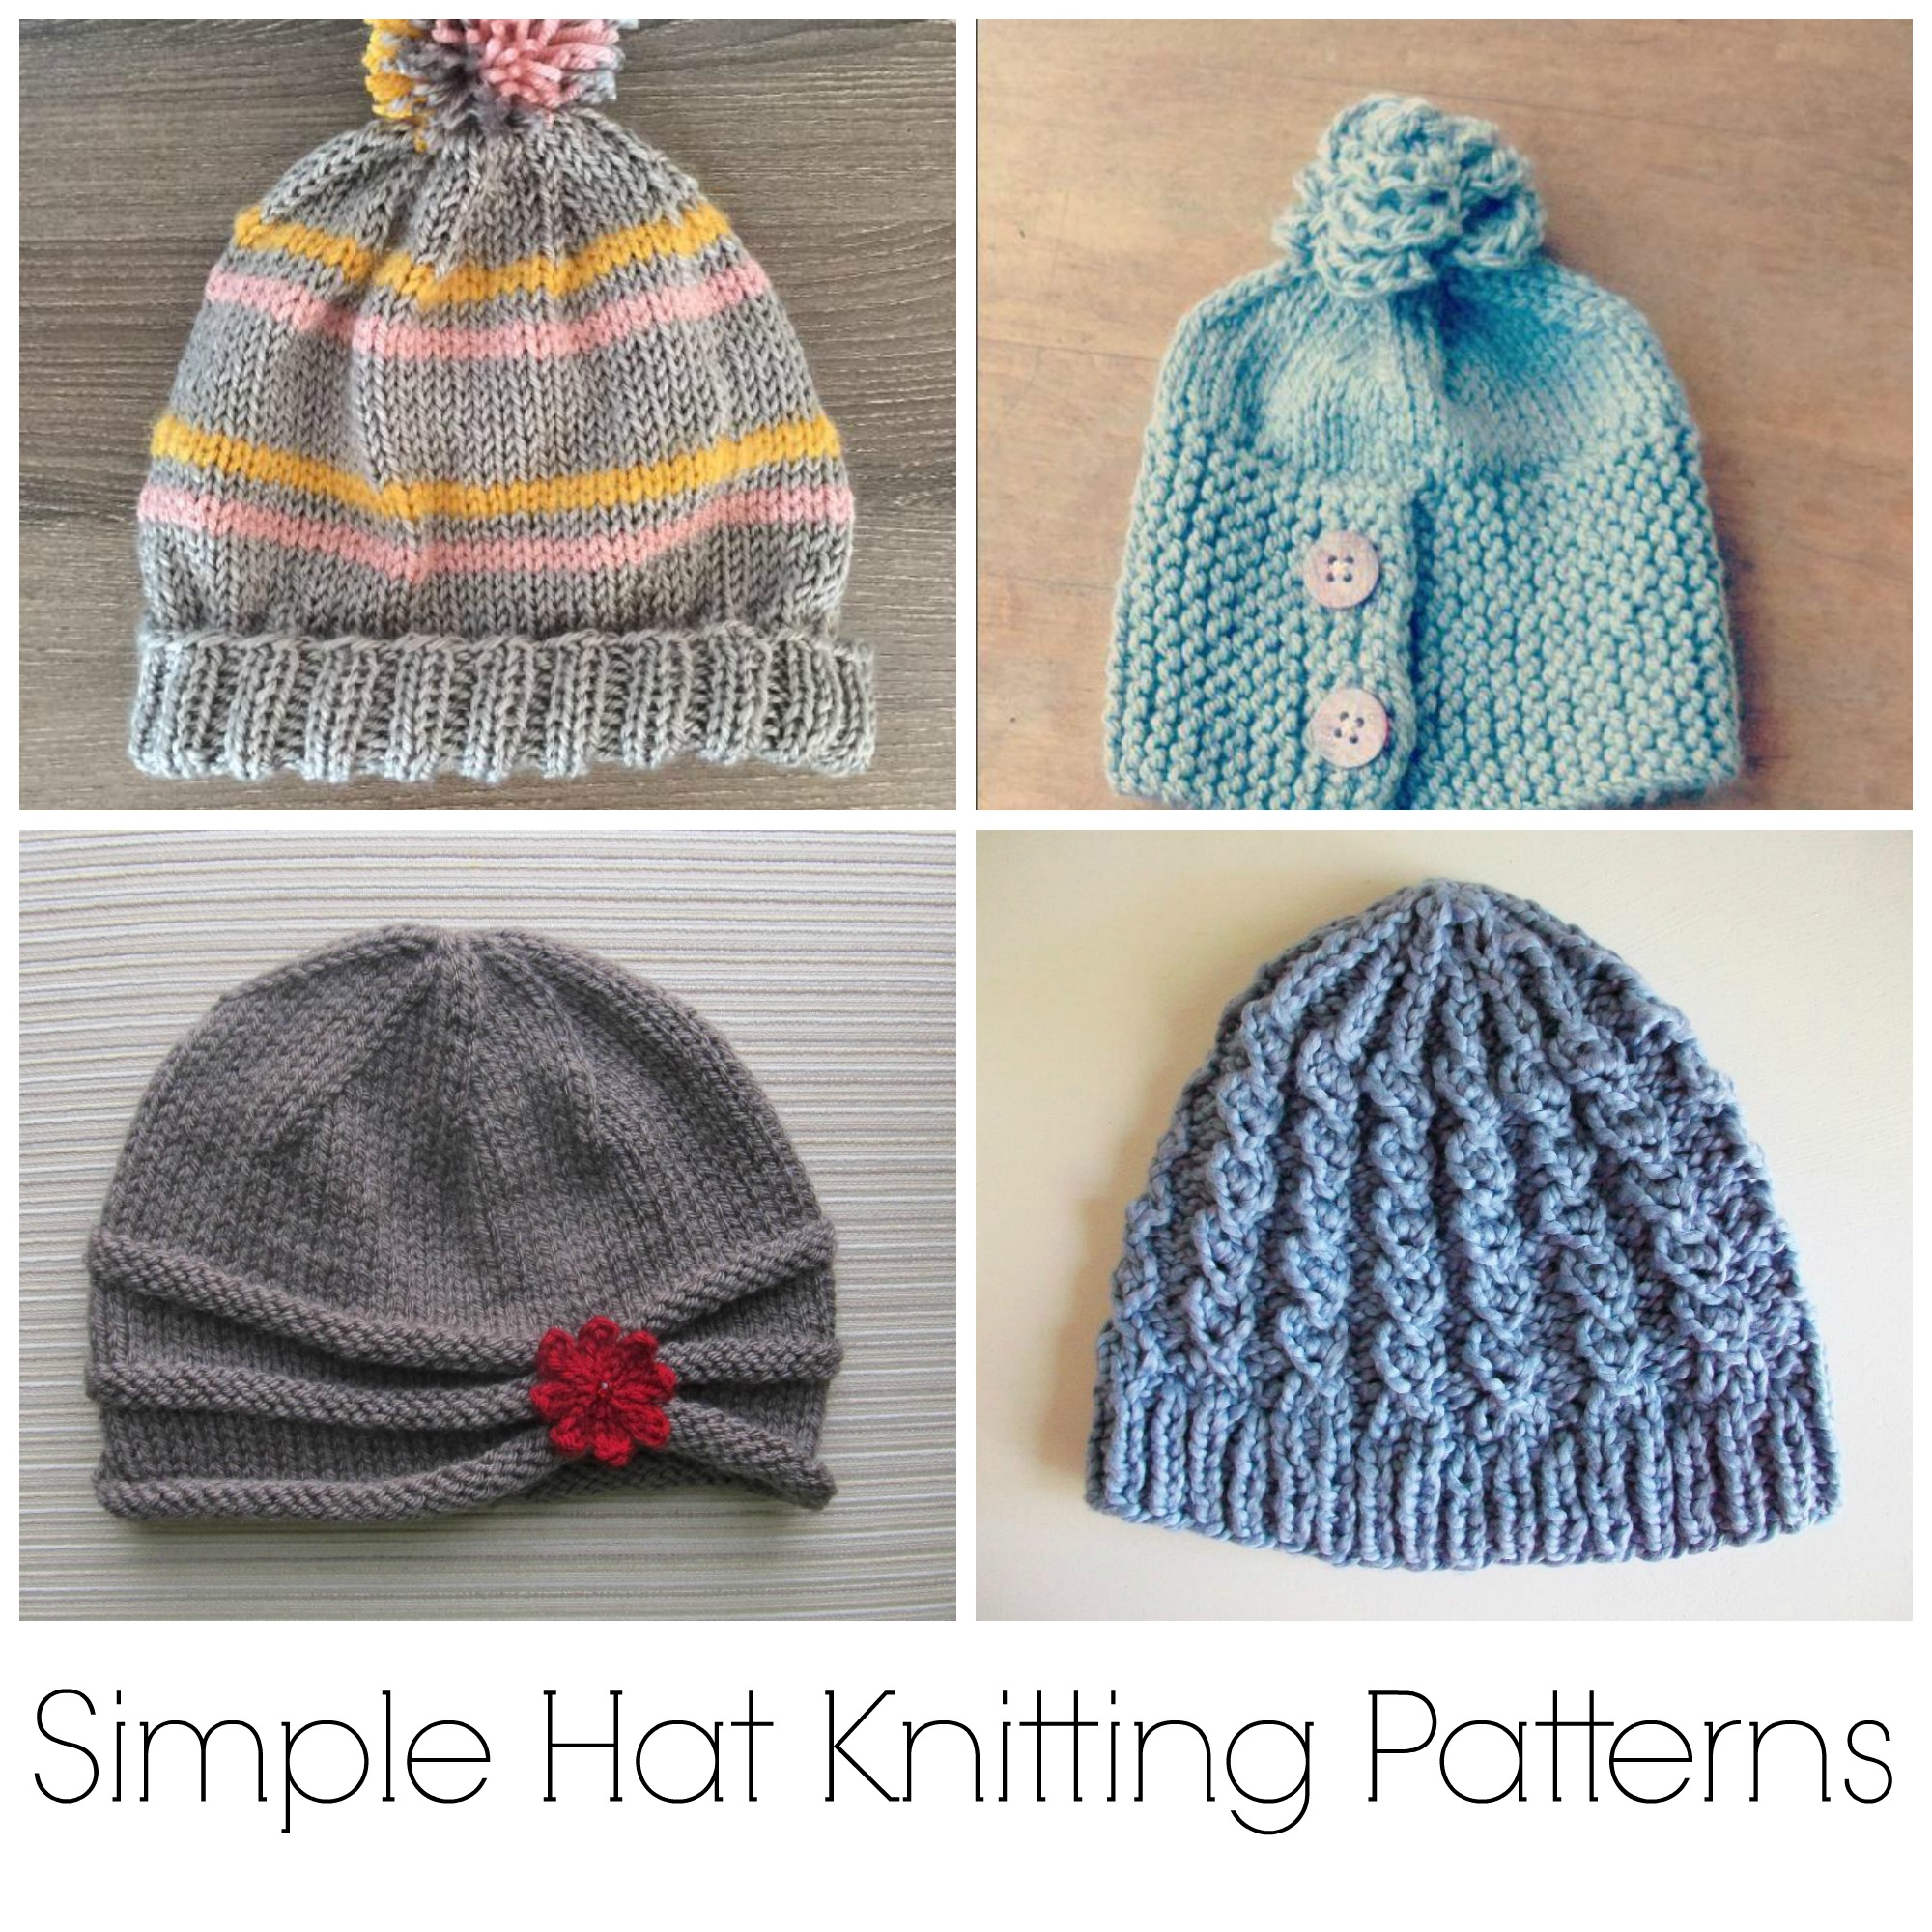 Simple Hat Knitting Patterns